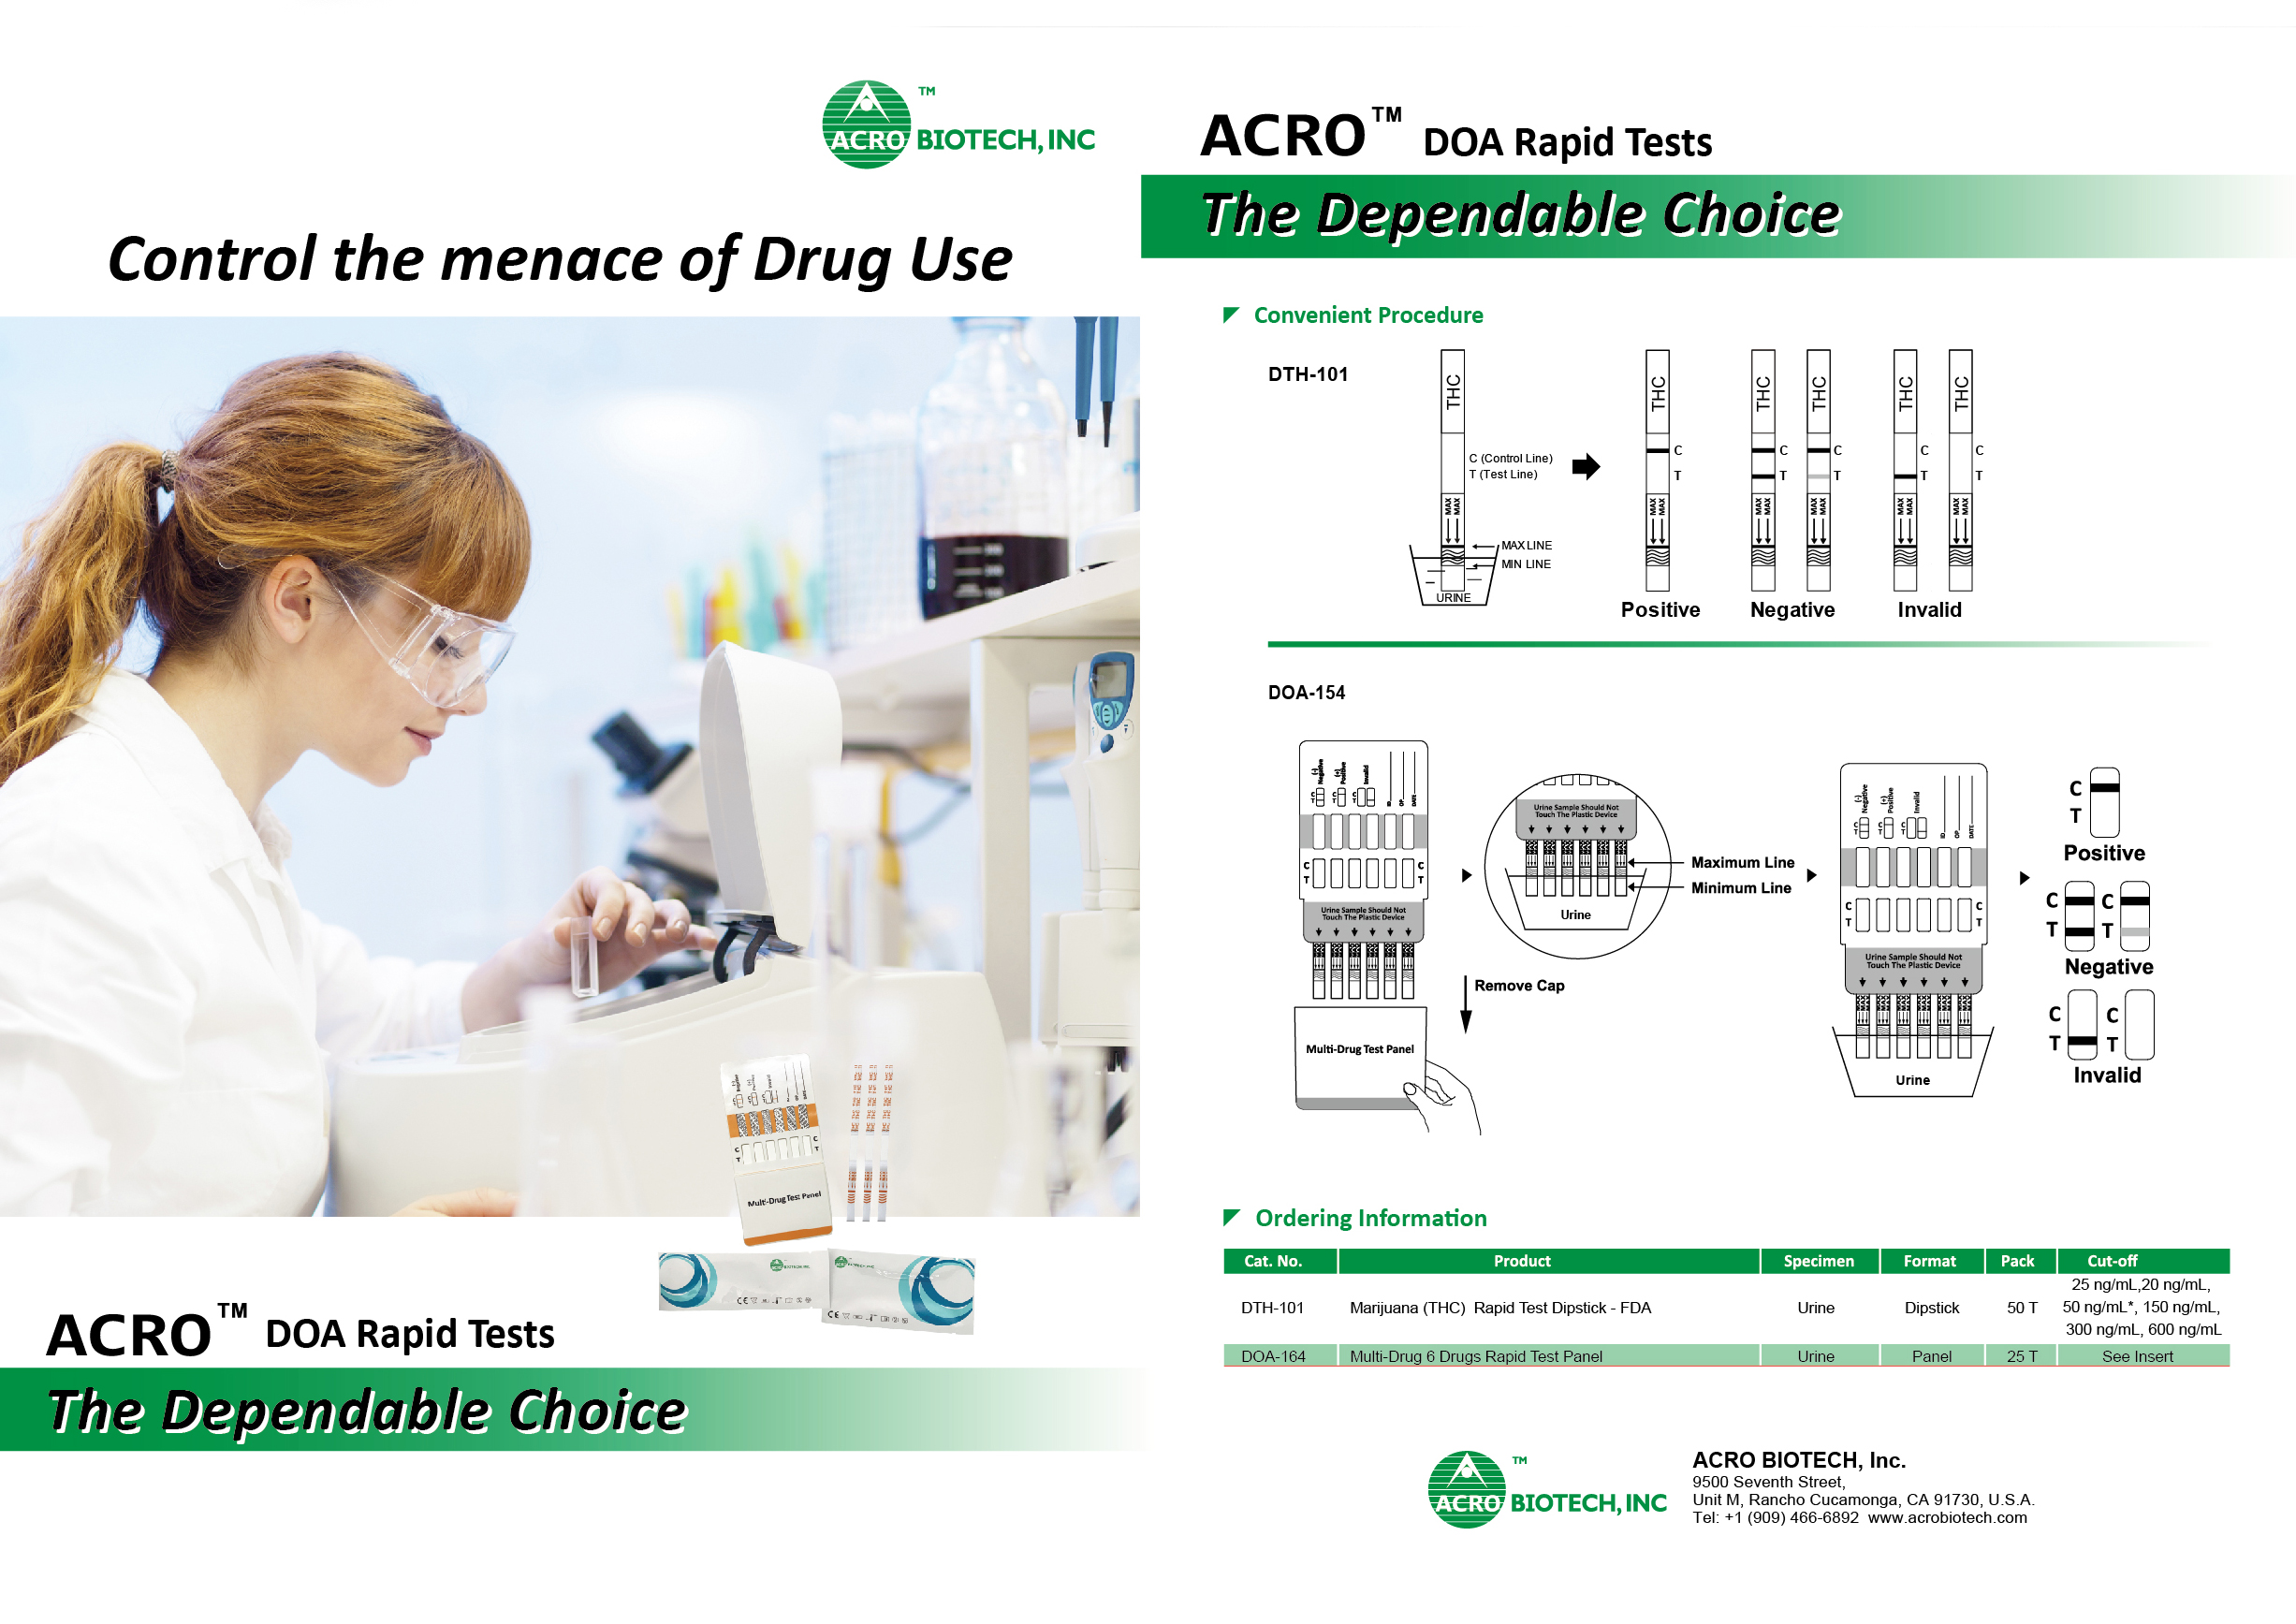 Control the menace of Drug Use & Abuse with our Wide-Range